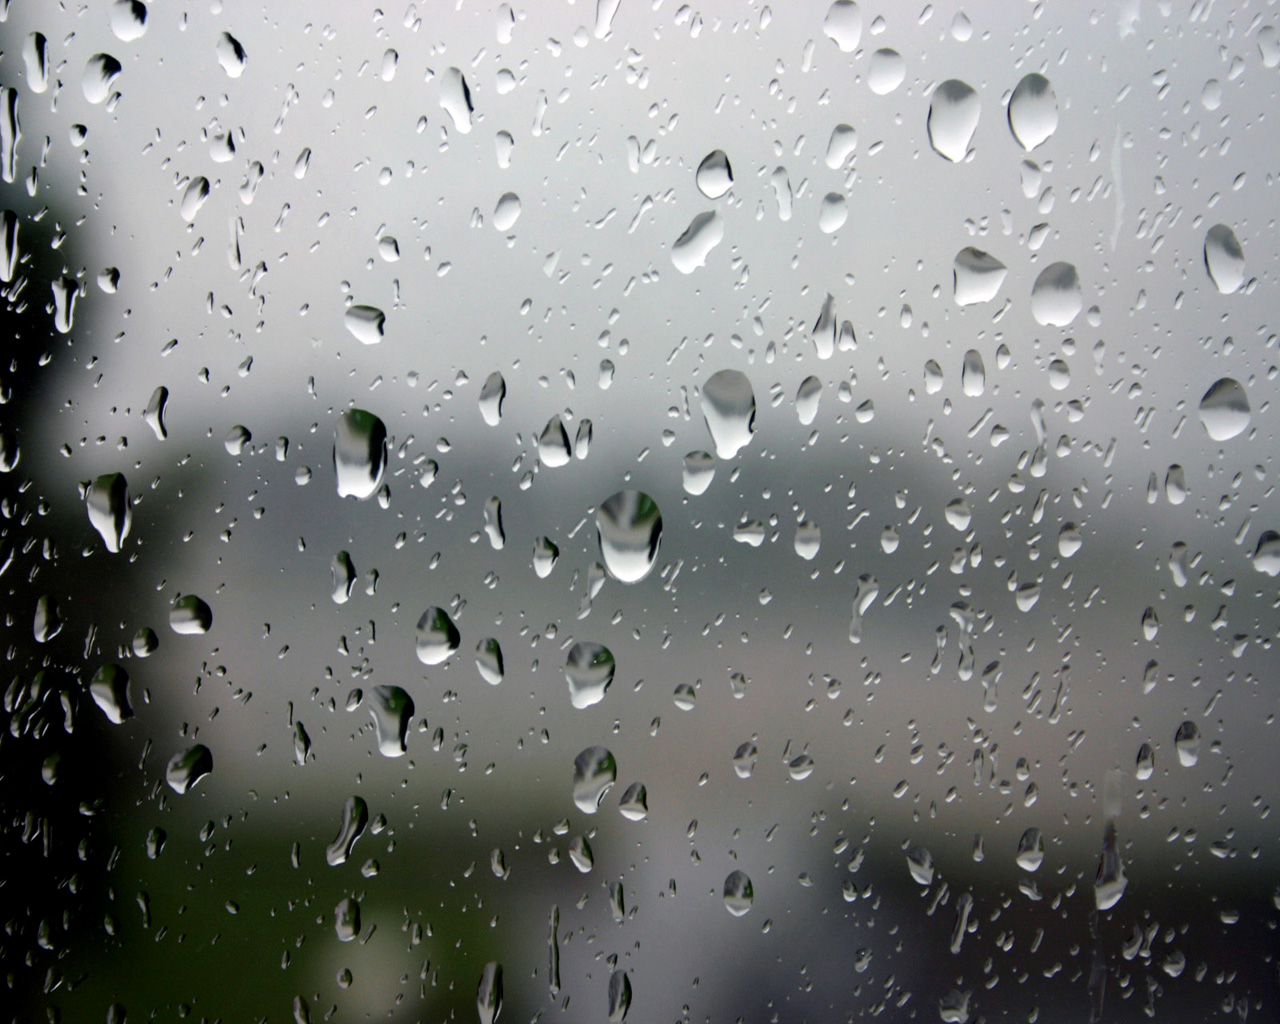 50 ] Rain Wallpapers For Desktop On WallpaperSafari